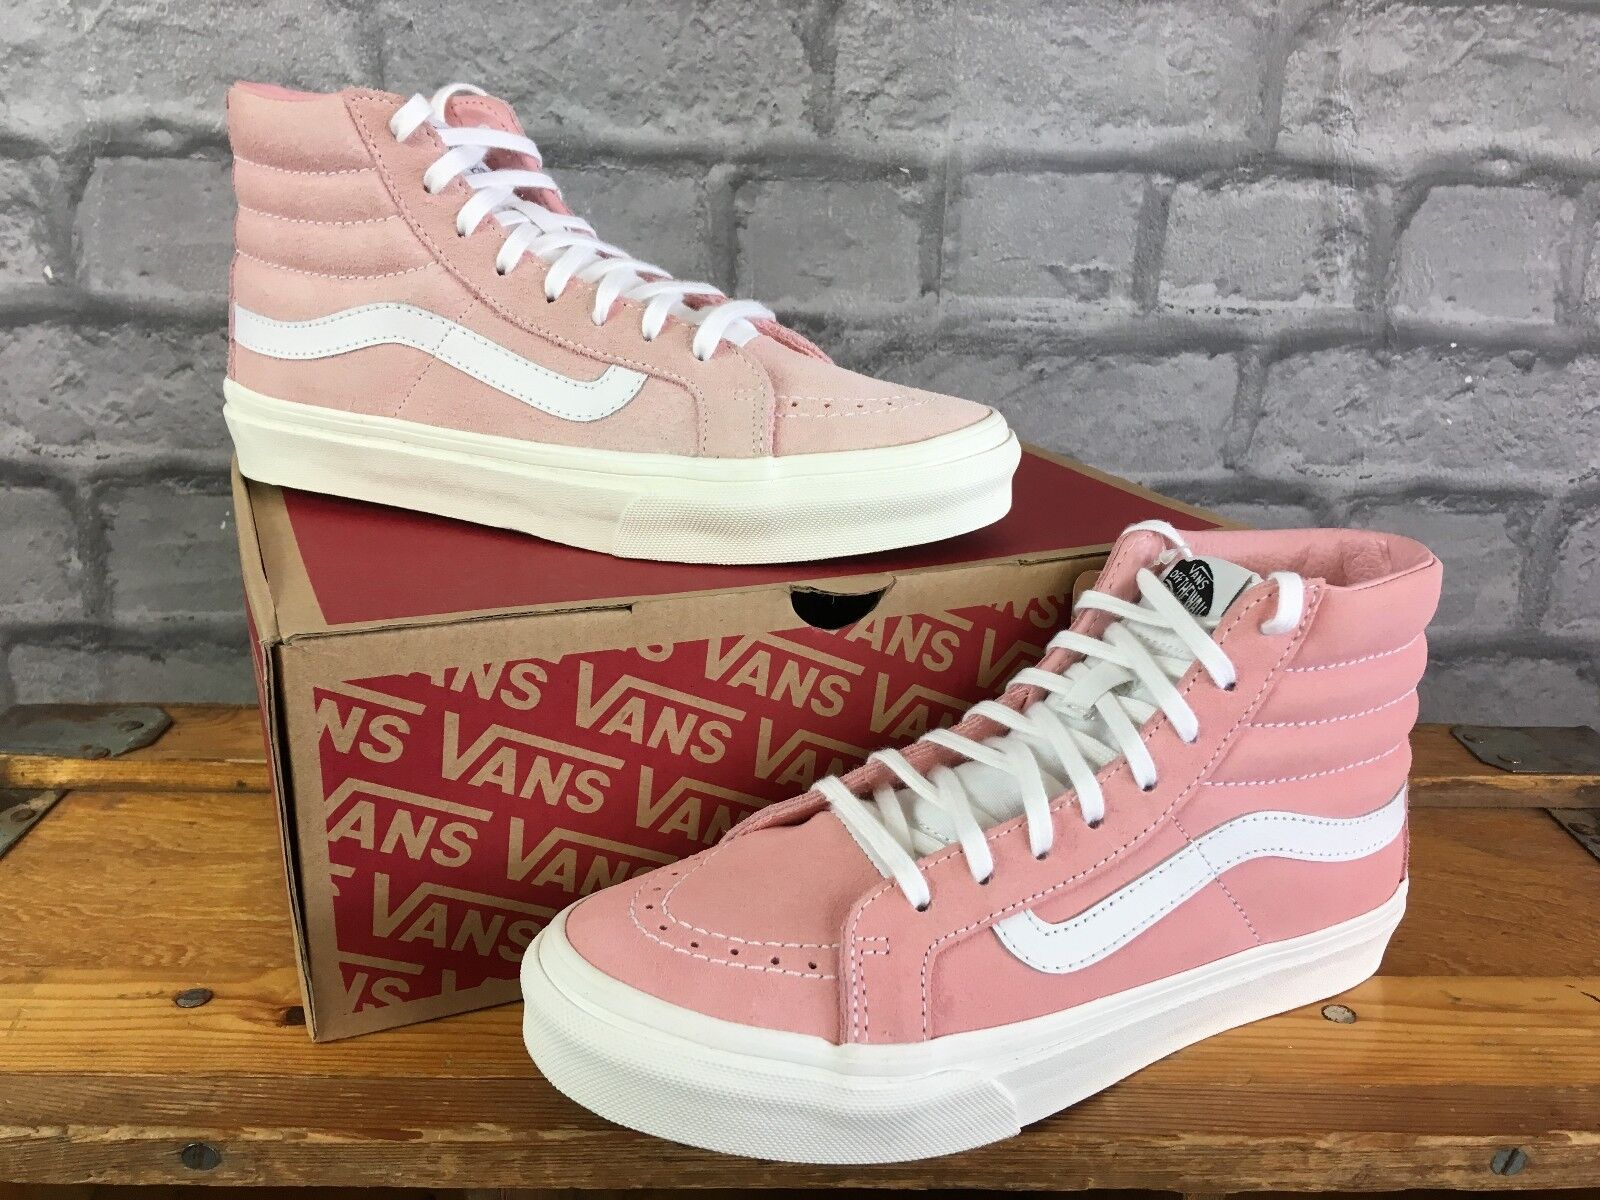 VANS LADIES UK 3 EU 35 BLOSSOM PINK & WHITE SUEDE SK8 HI SLIM TRAINERS